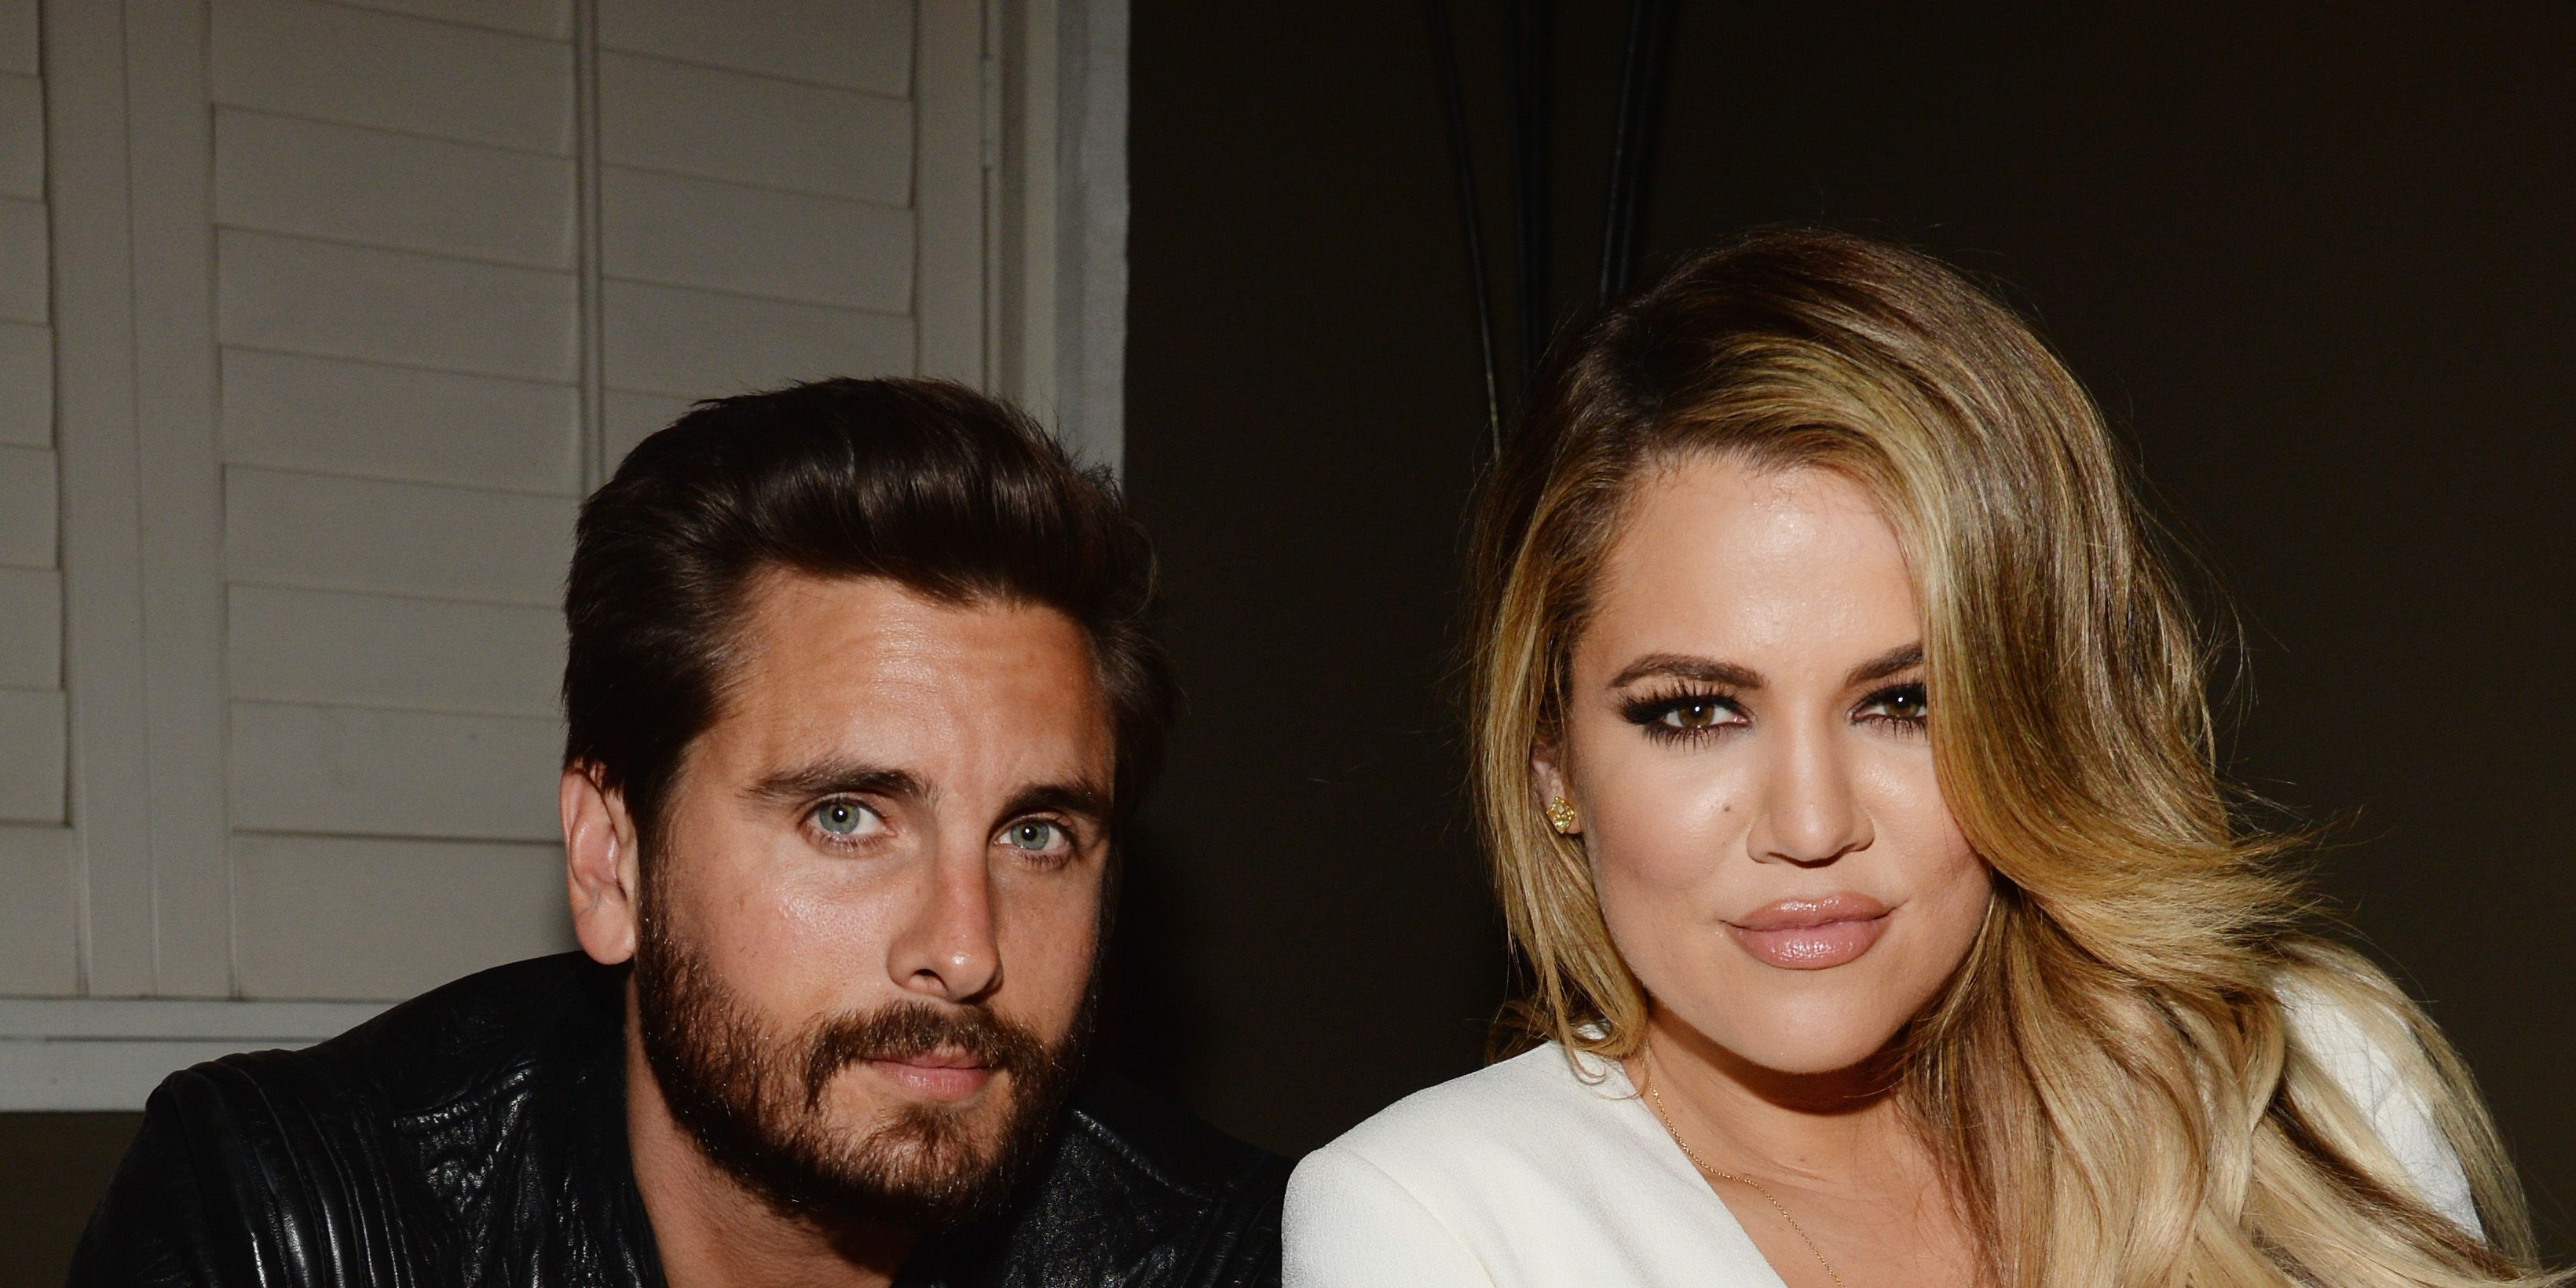 Scott Disick names Khloe Kardashian his Woman Crush Wednesday, and she loves it